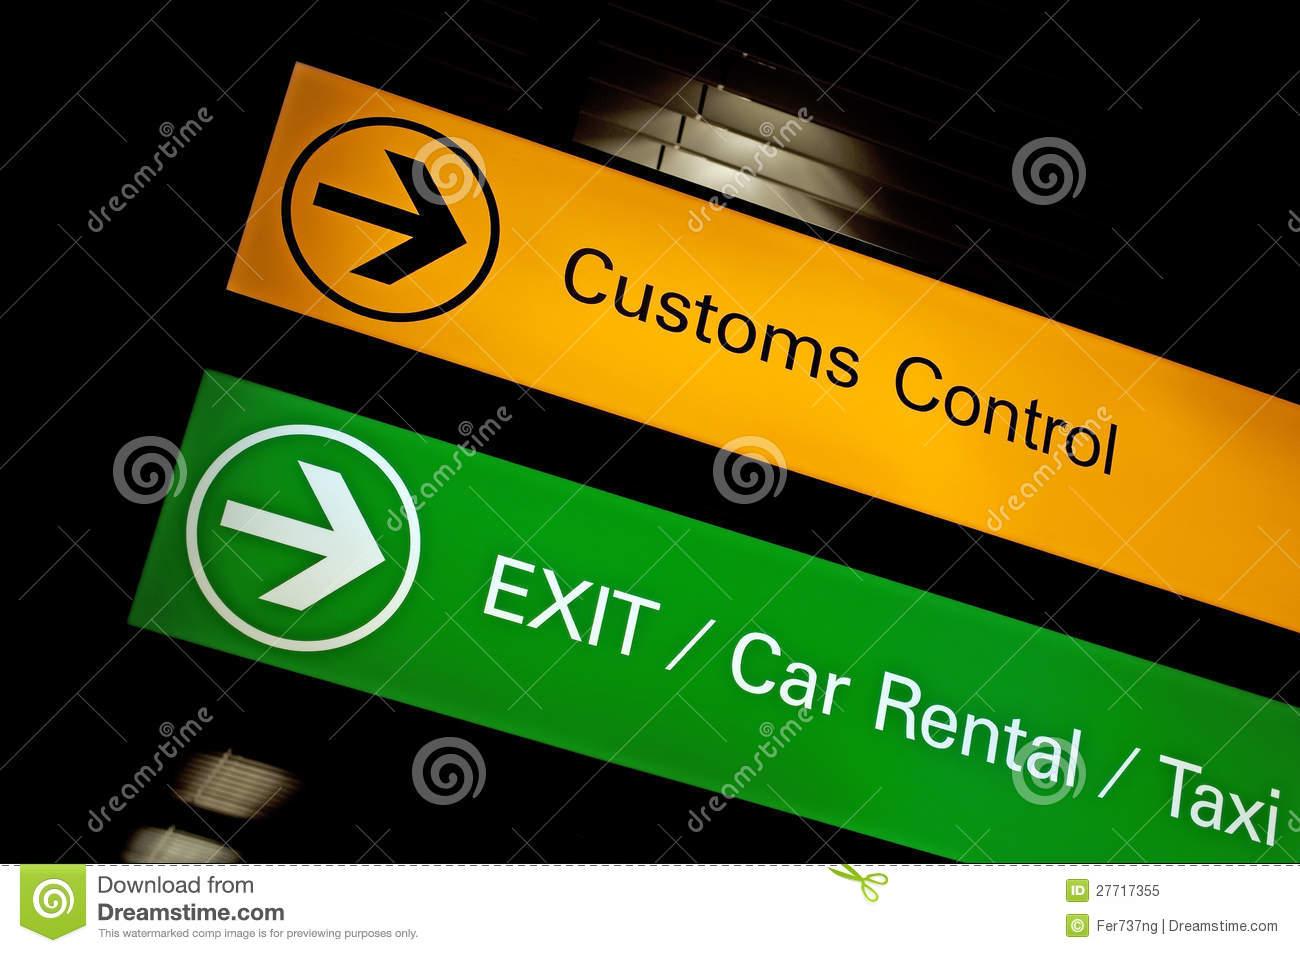 Customs Control Sign Royalty Free Stock Photo Image